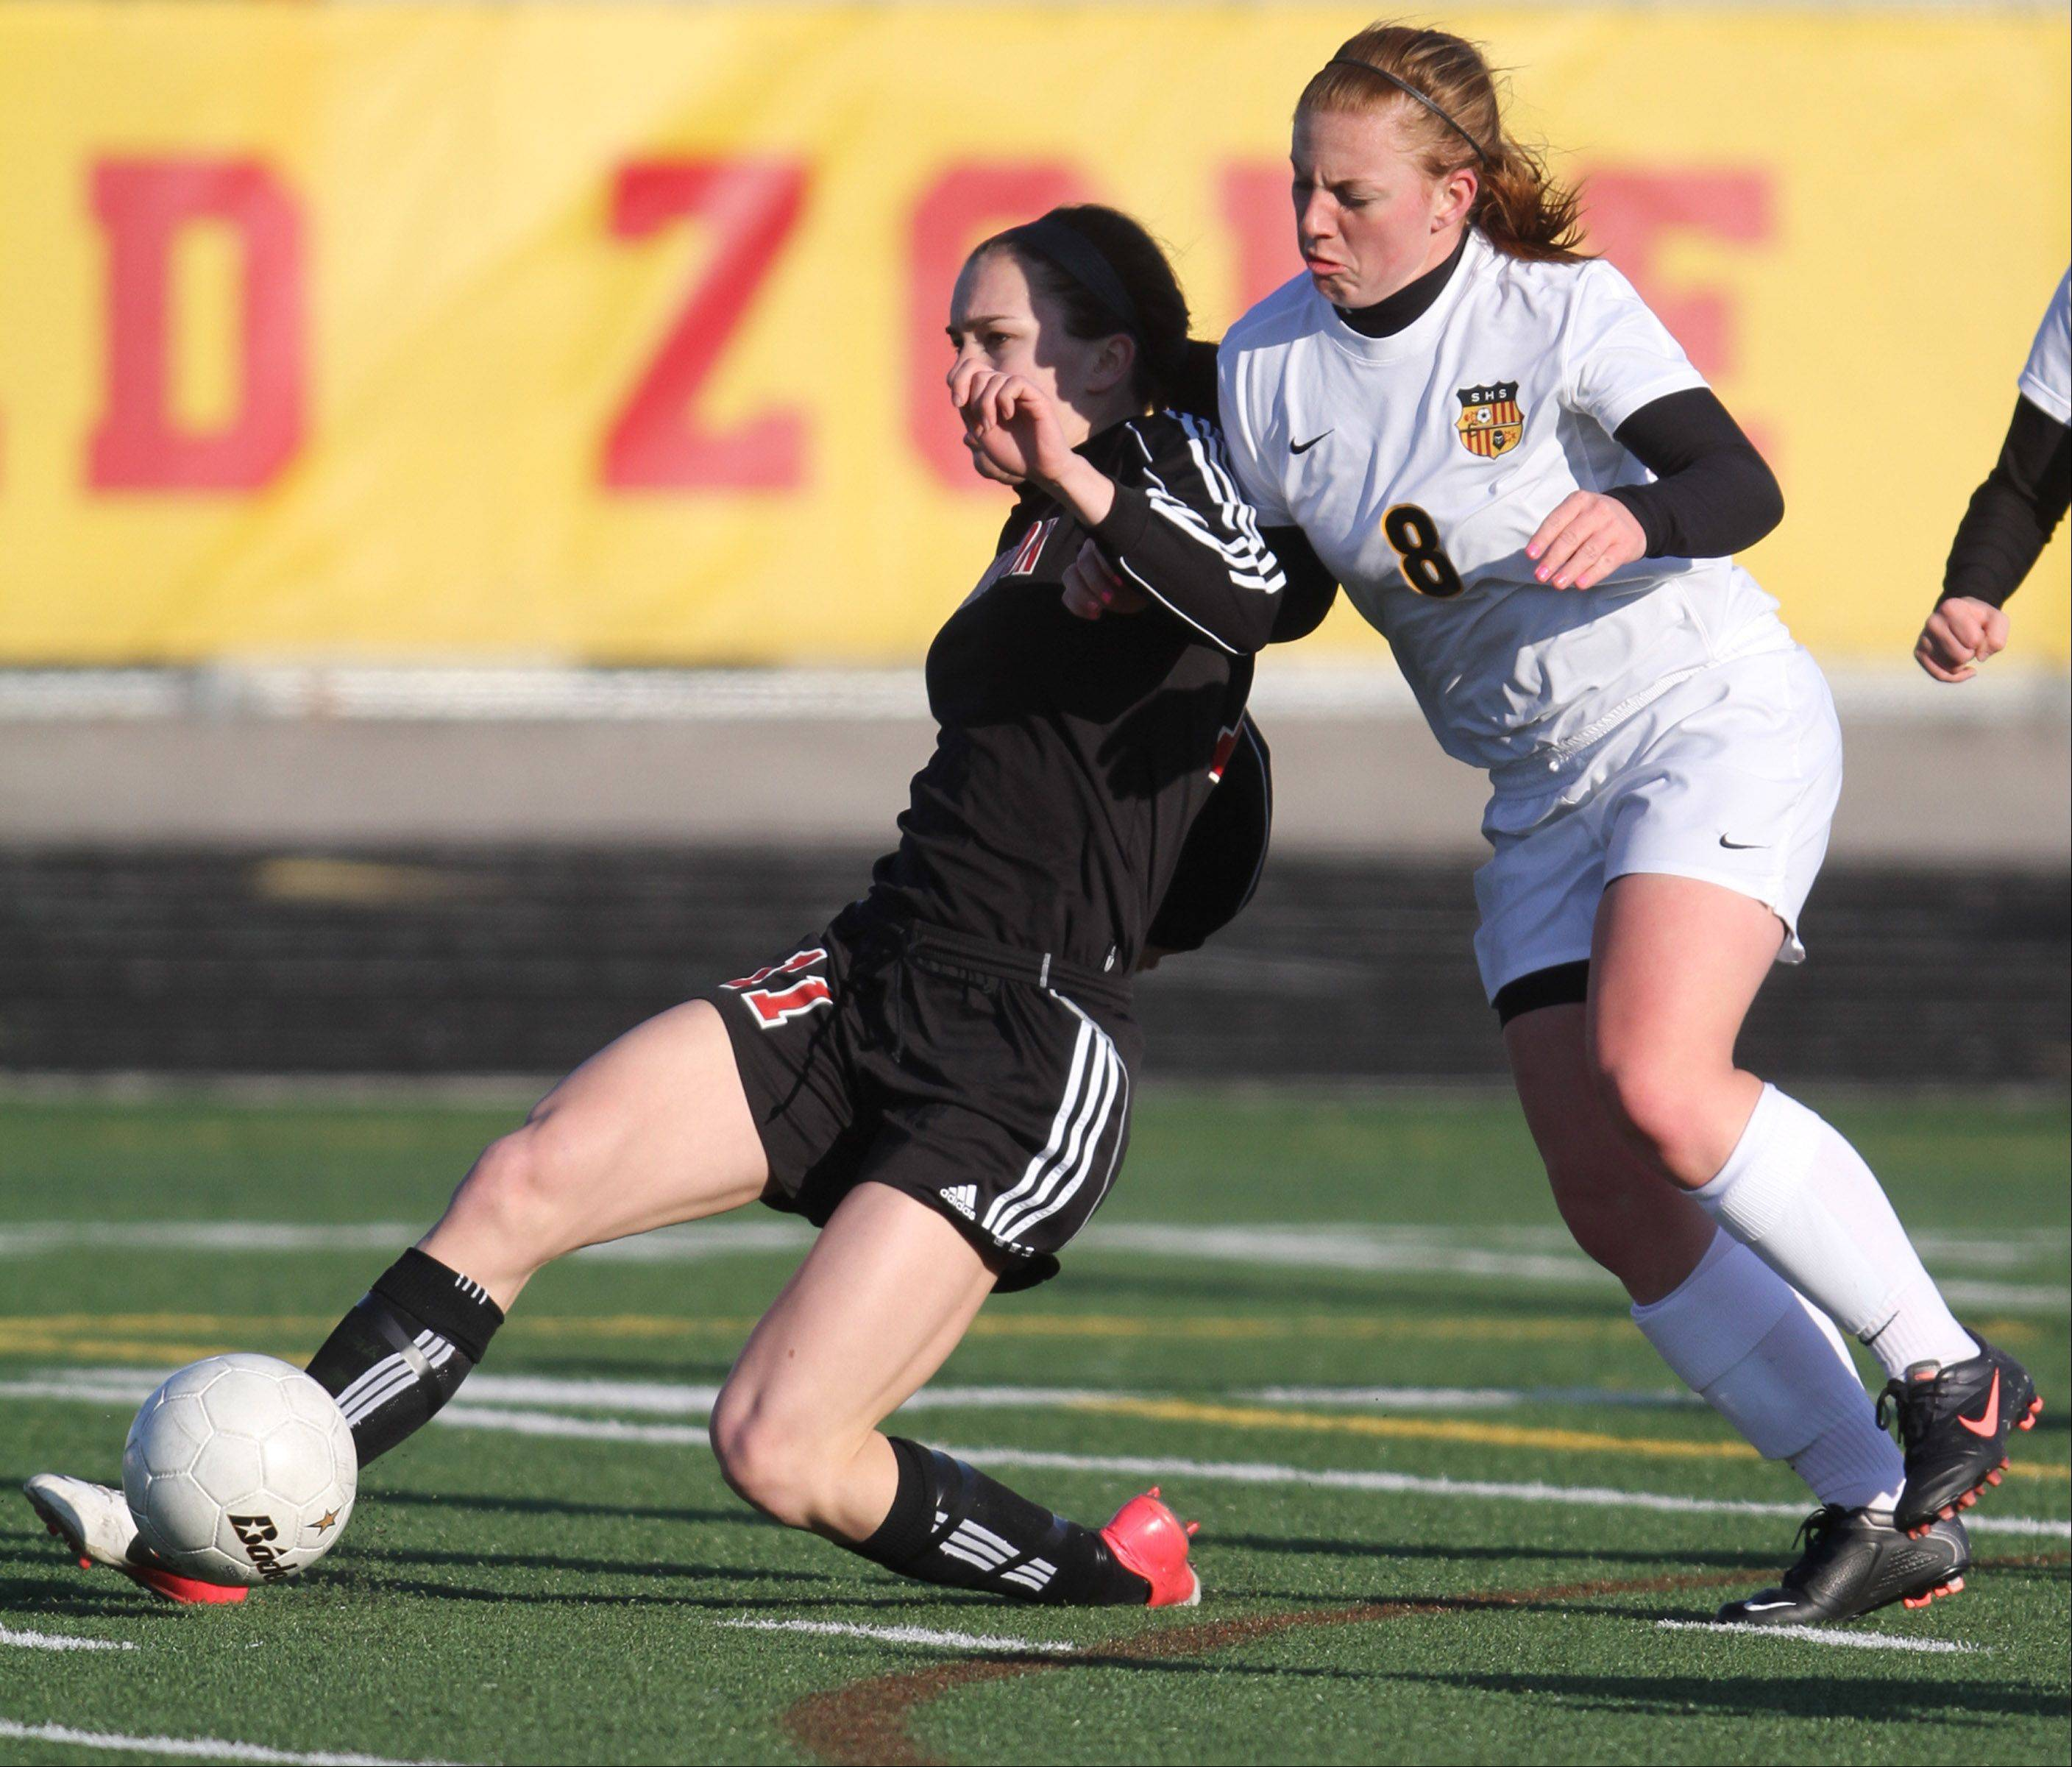 Barrington's Jenna Szczensny battles for the ball with Schaumburg's Emily Longo.